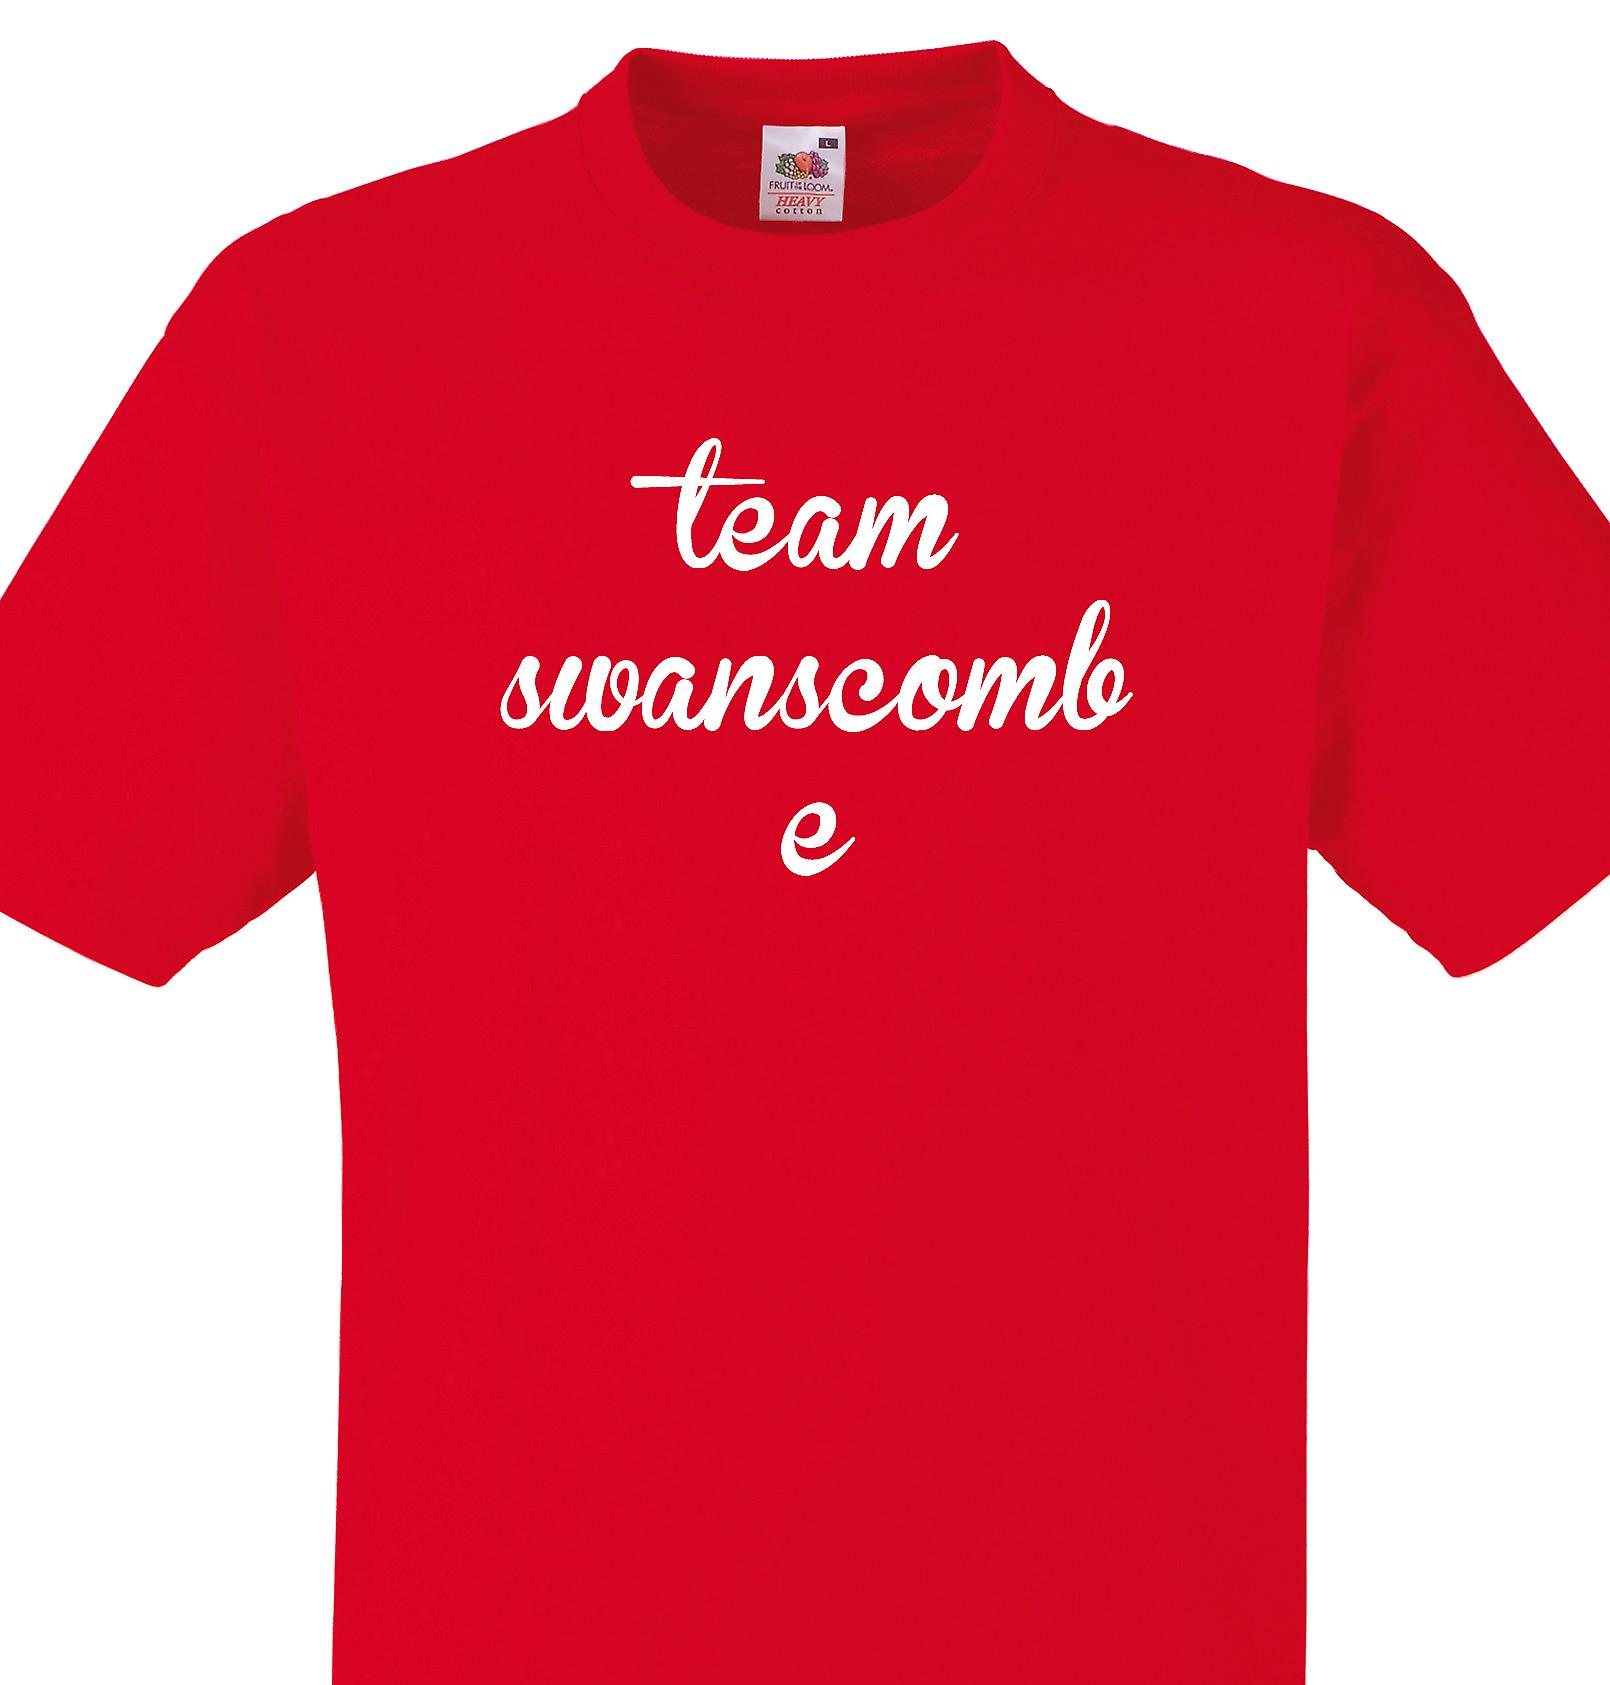 Team Swanscombe Red T shirt